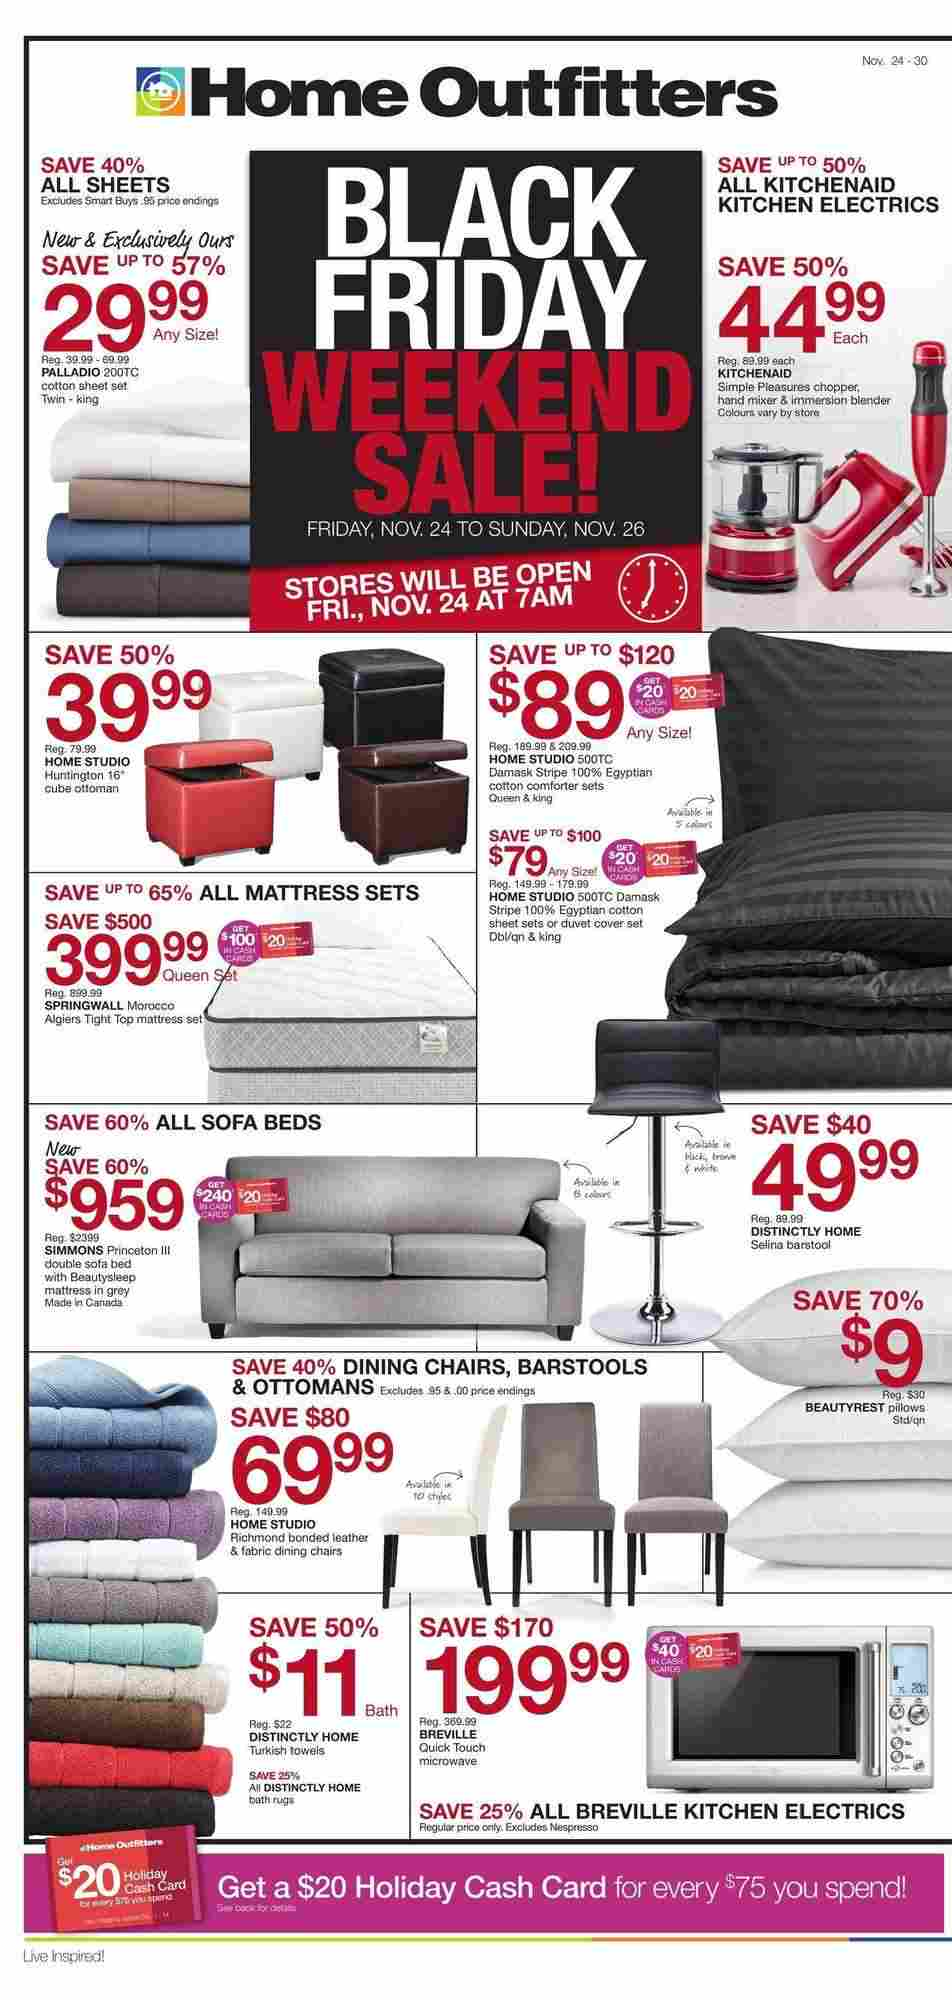 Wondrous Home Outfitters Flyer On Black Friday Weekend Sale Evergreenethics Interior Chair Design Evergreenethicsorg